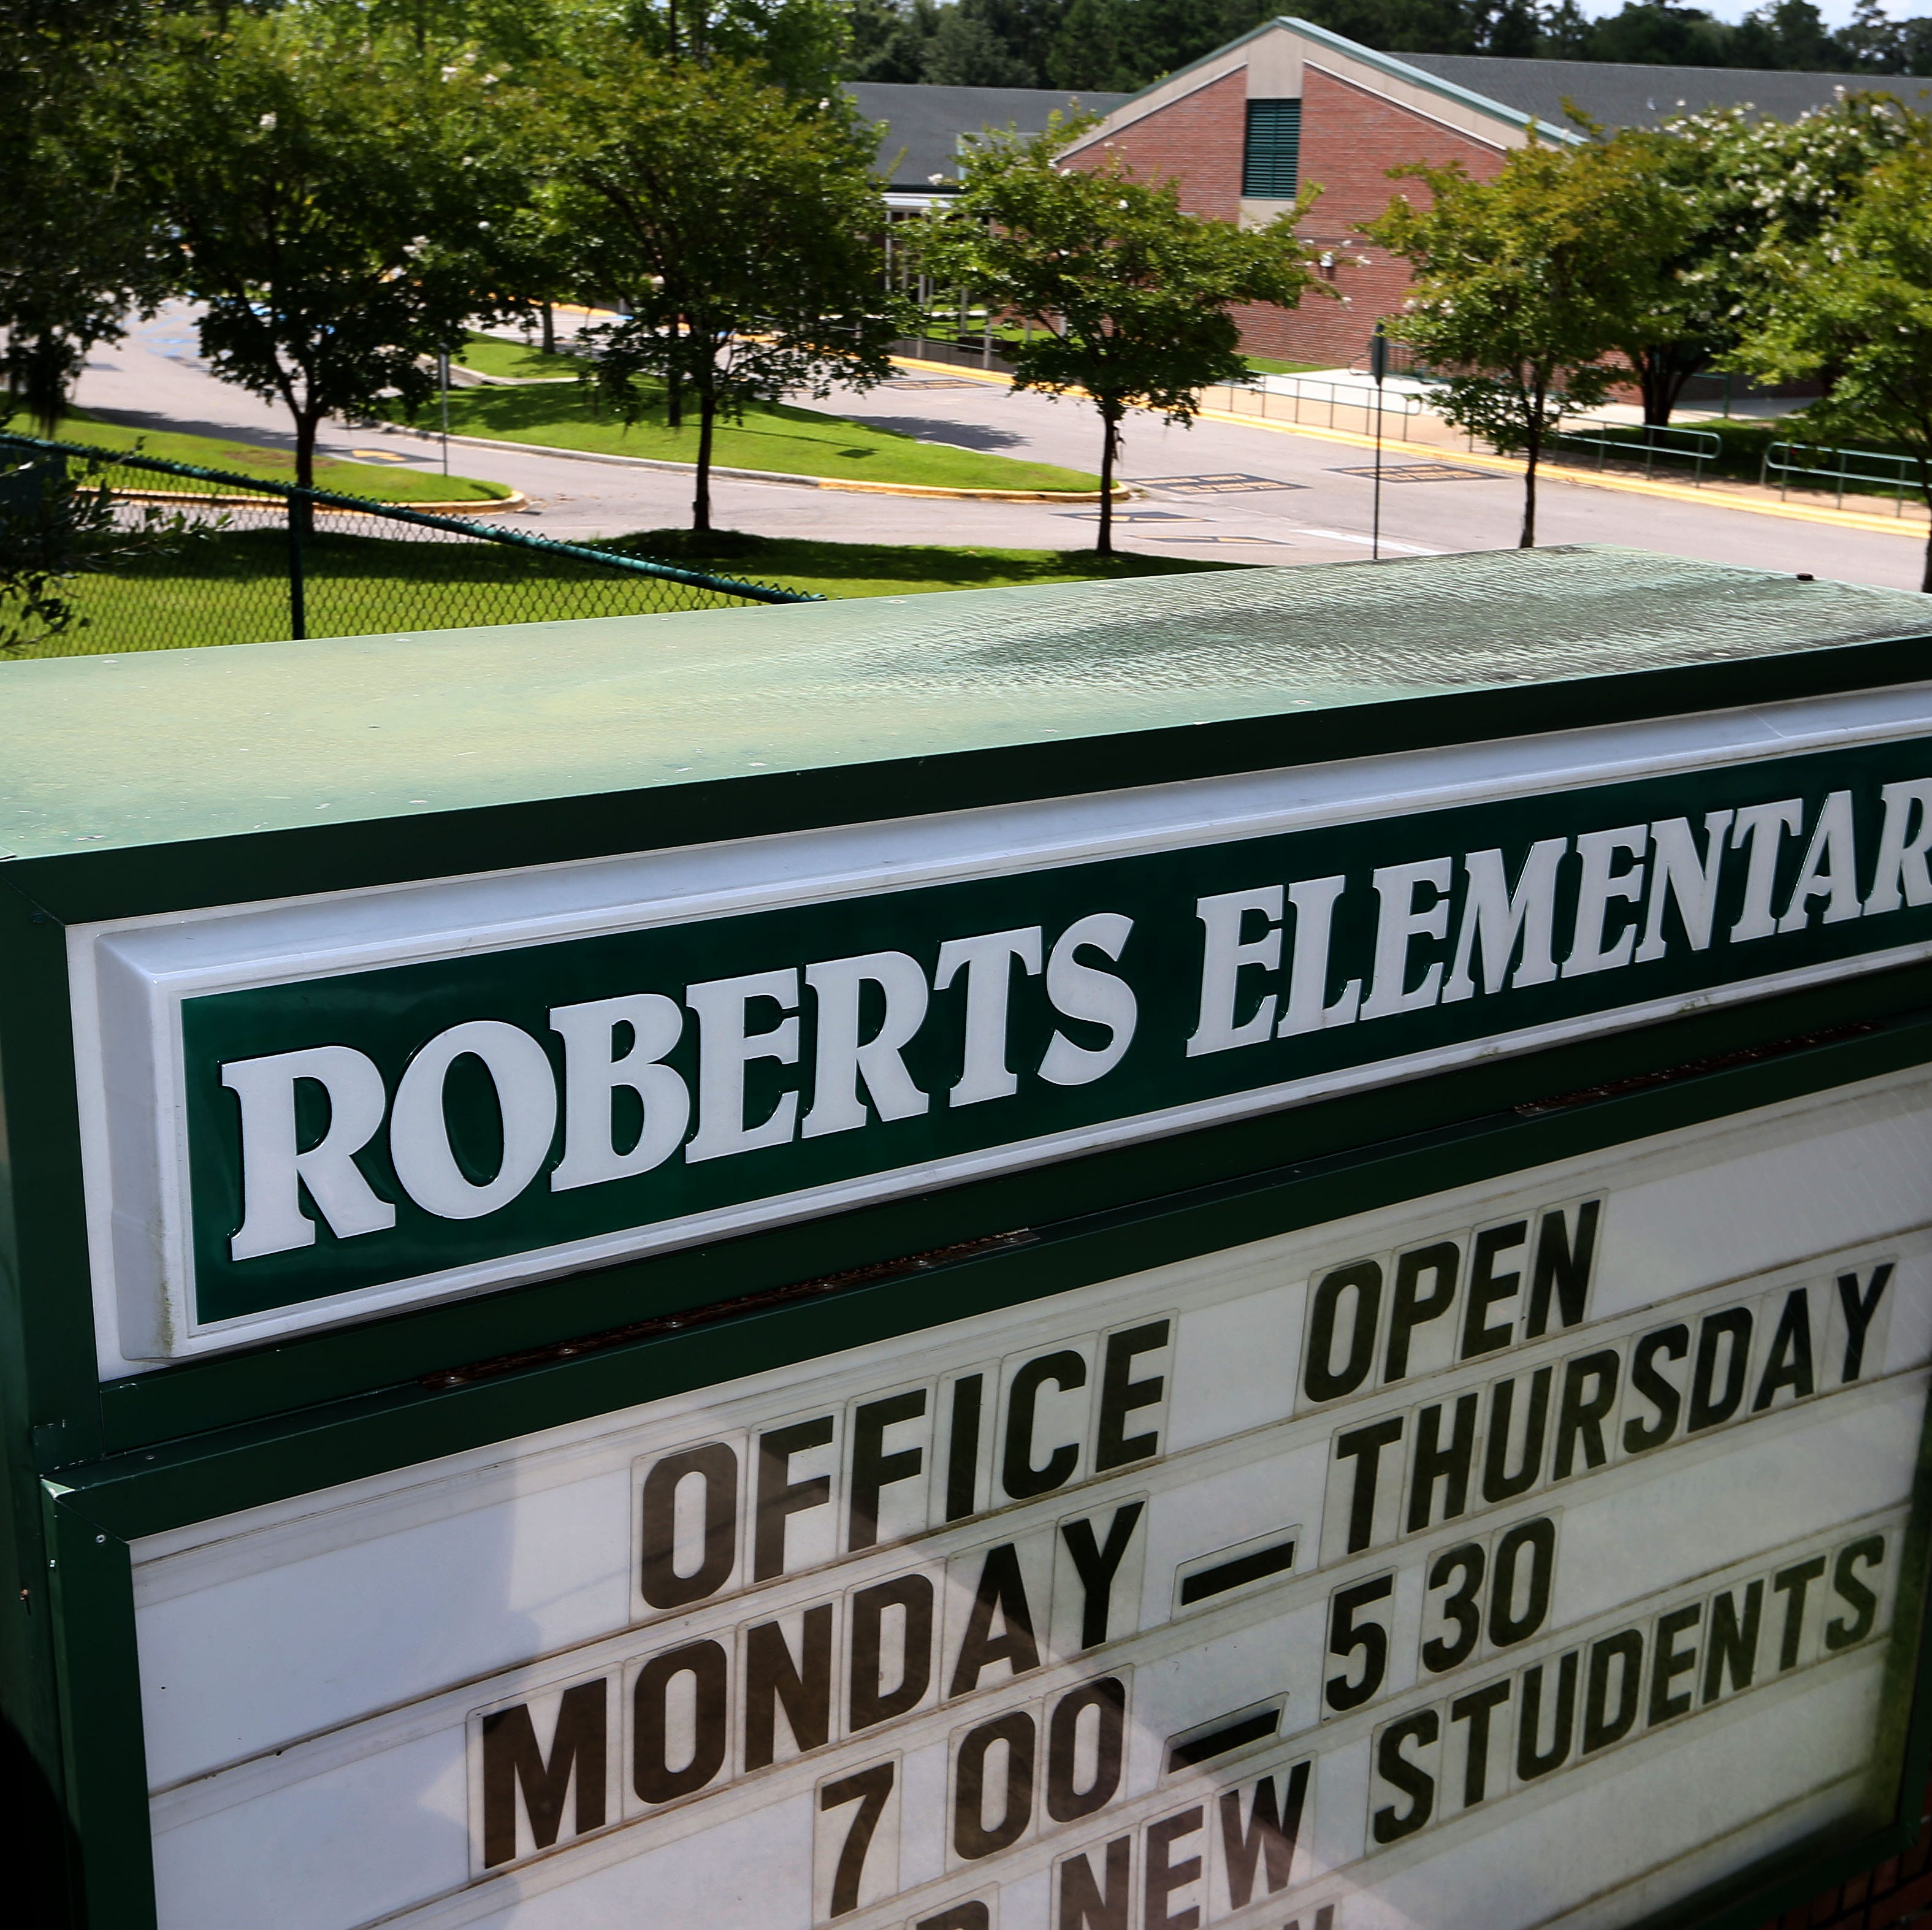 TPD report: Roberts Elementary students 'put into effect a plot to murder another student'